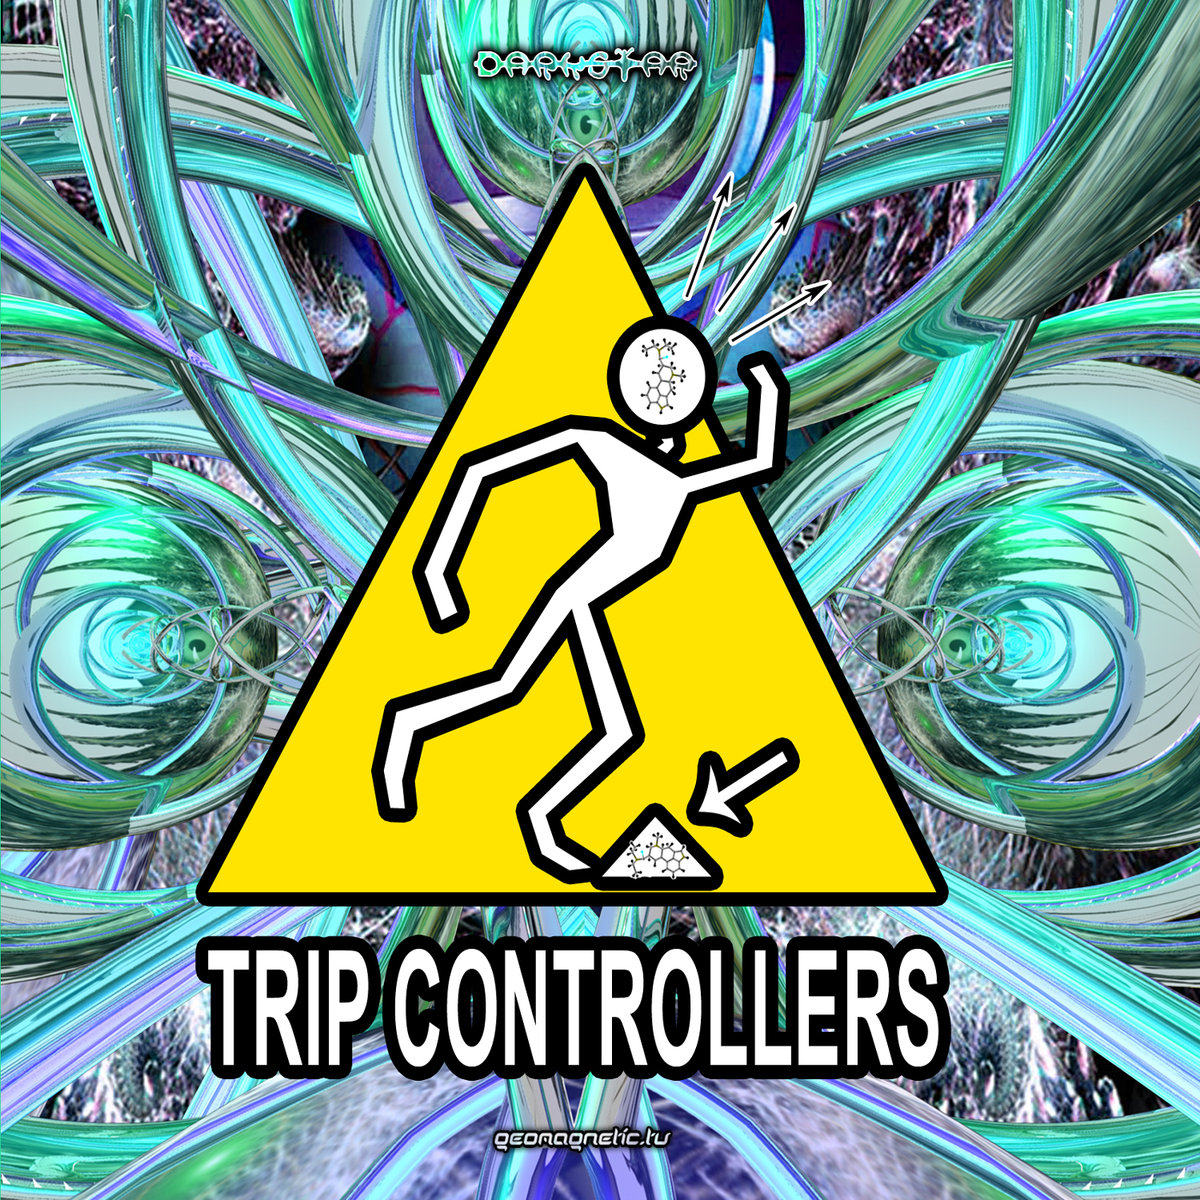 Abandoned Noise - Eternal Happiness @ 'Various Artists - Trip Controllers (Compiled by Dr. Spook)' album (electronic, goa)